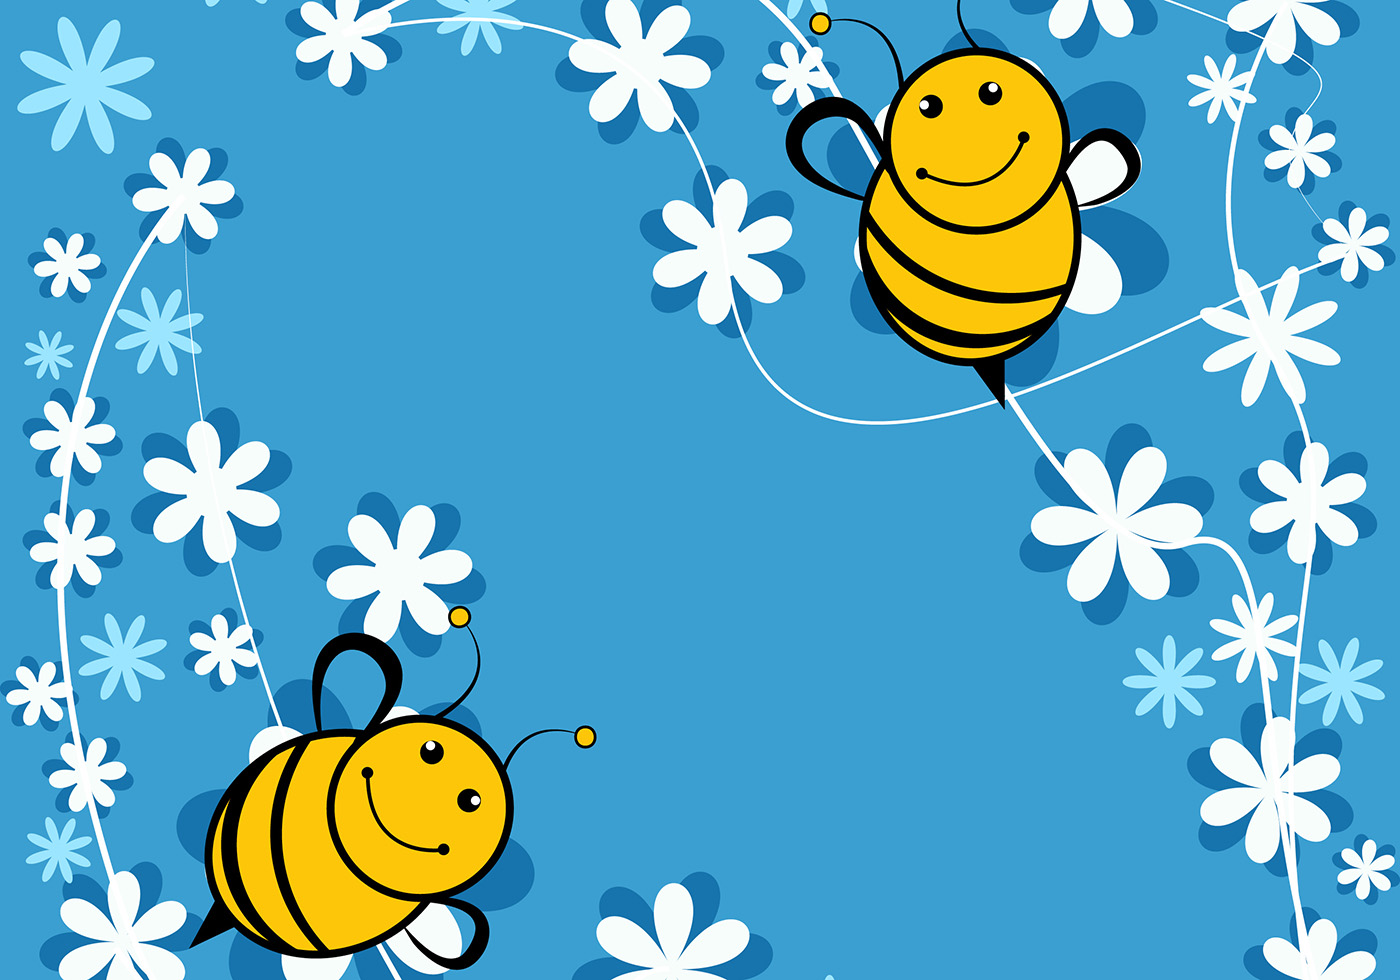 Cute Bee Blue Background - Download Free Vector Art, Stock ...